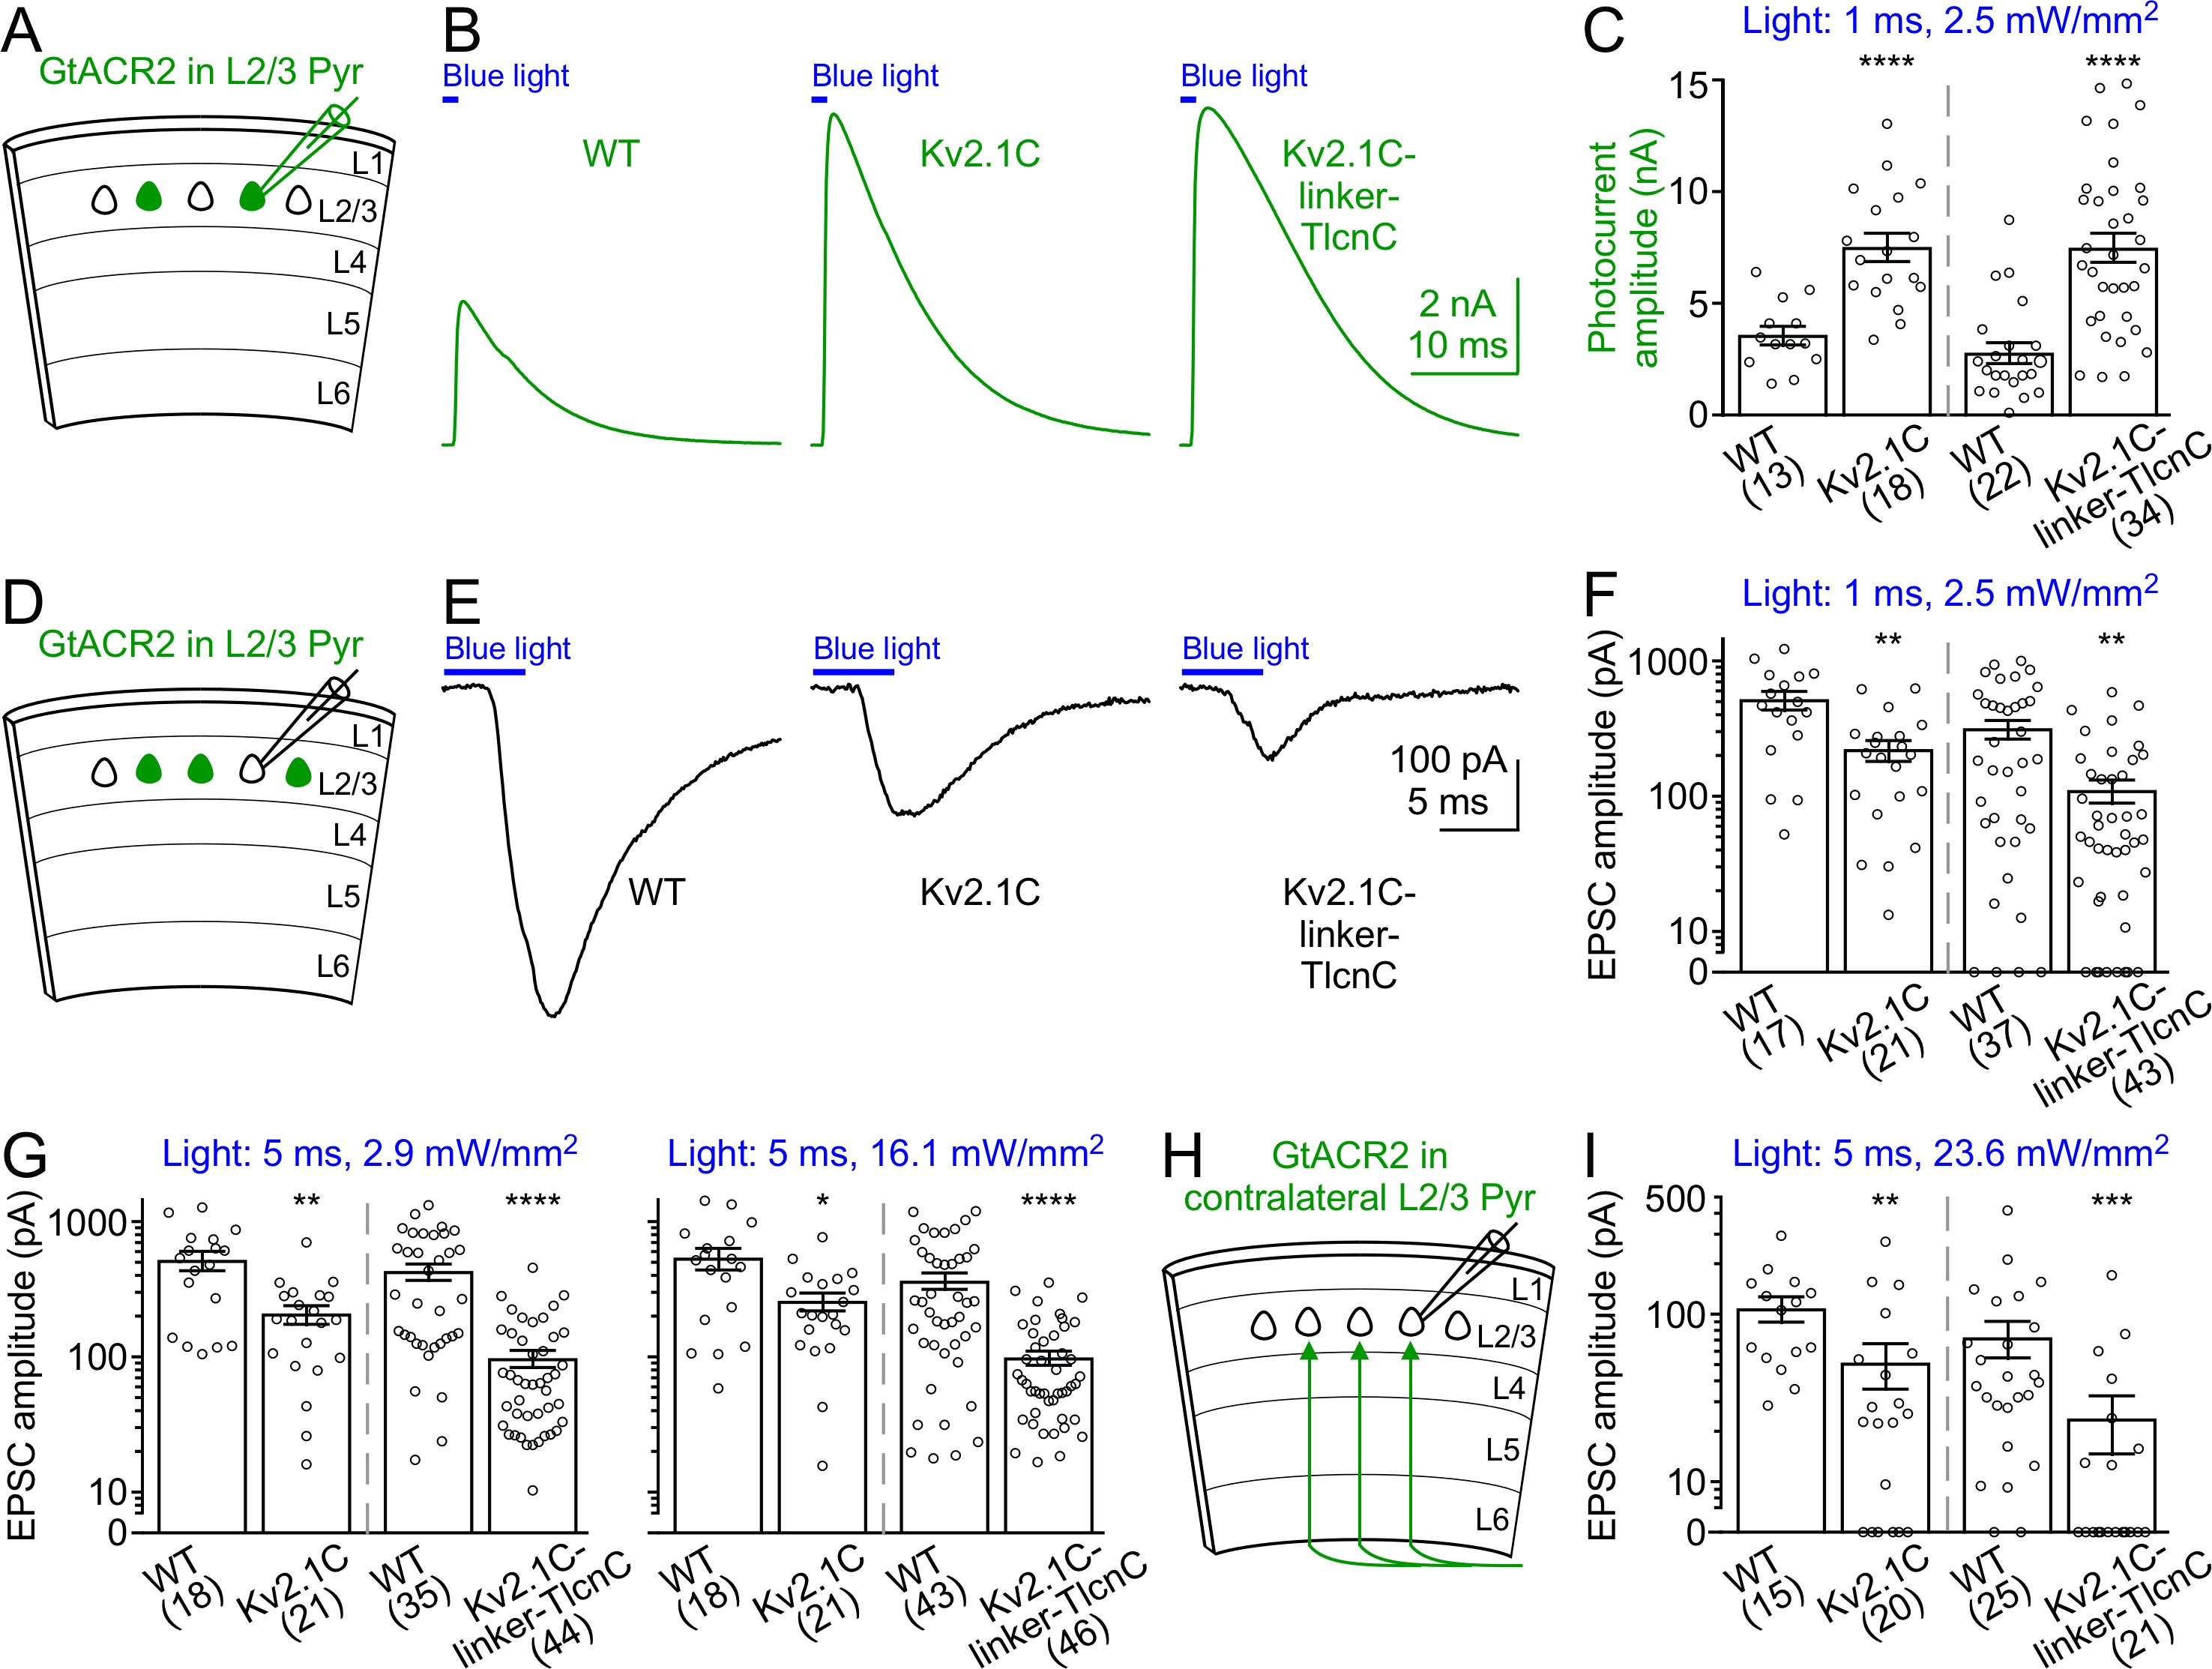 Targeting Light Gated Chloride Channels To Neuronal Somatodendritic 1796 Cj7 Fuse Box Diagram Activation Of Somatodendritically Targeted Gtacr2 Variants Generates Larger Photocurrents But Causes Less Neurotransmitter Release Than Wild Type